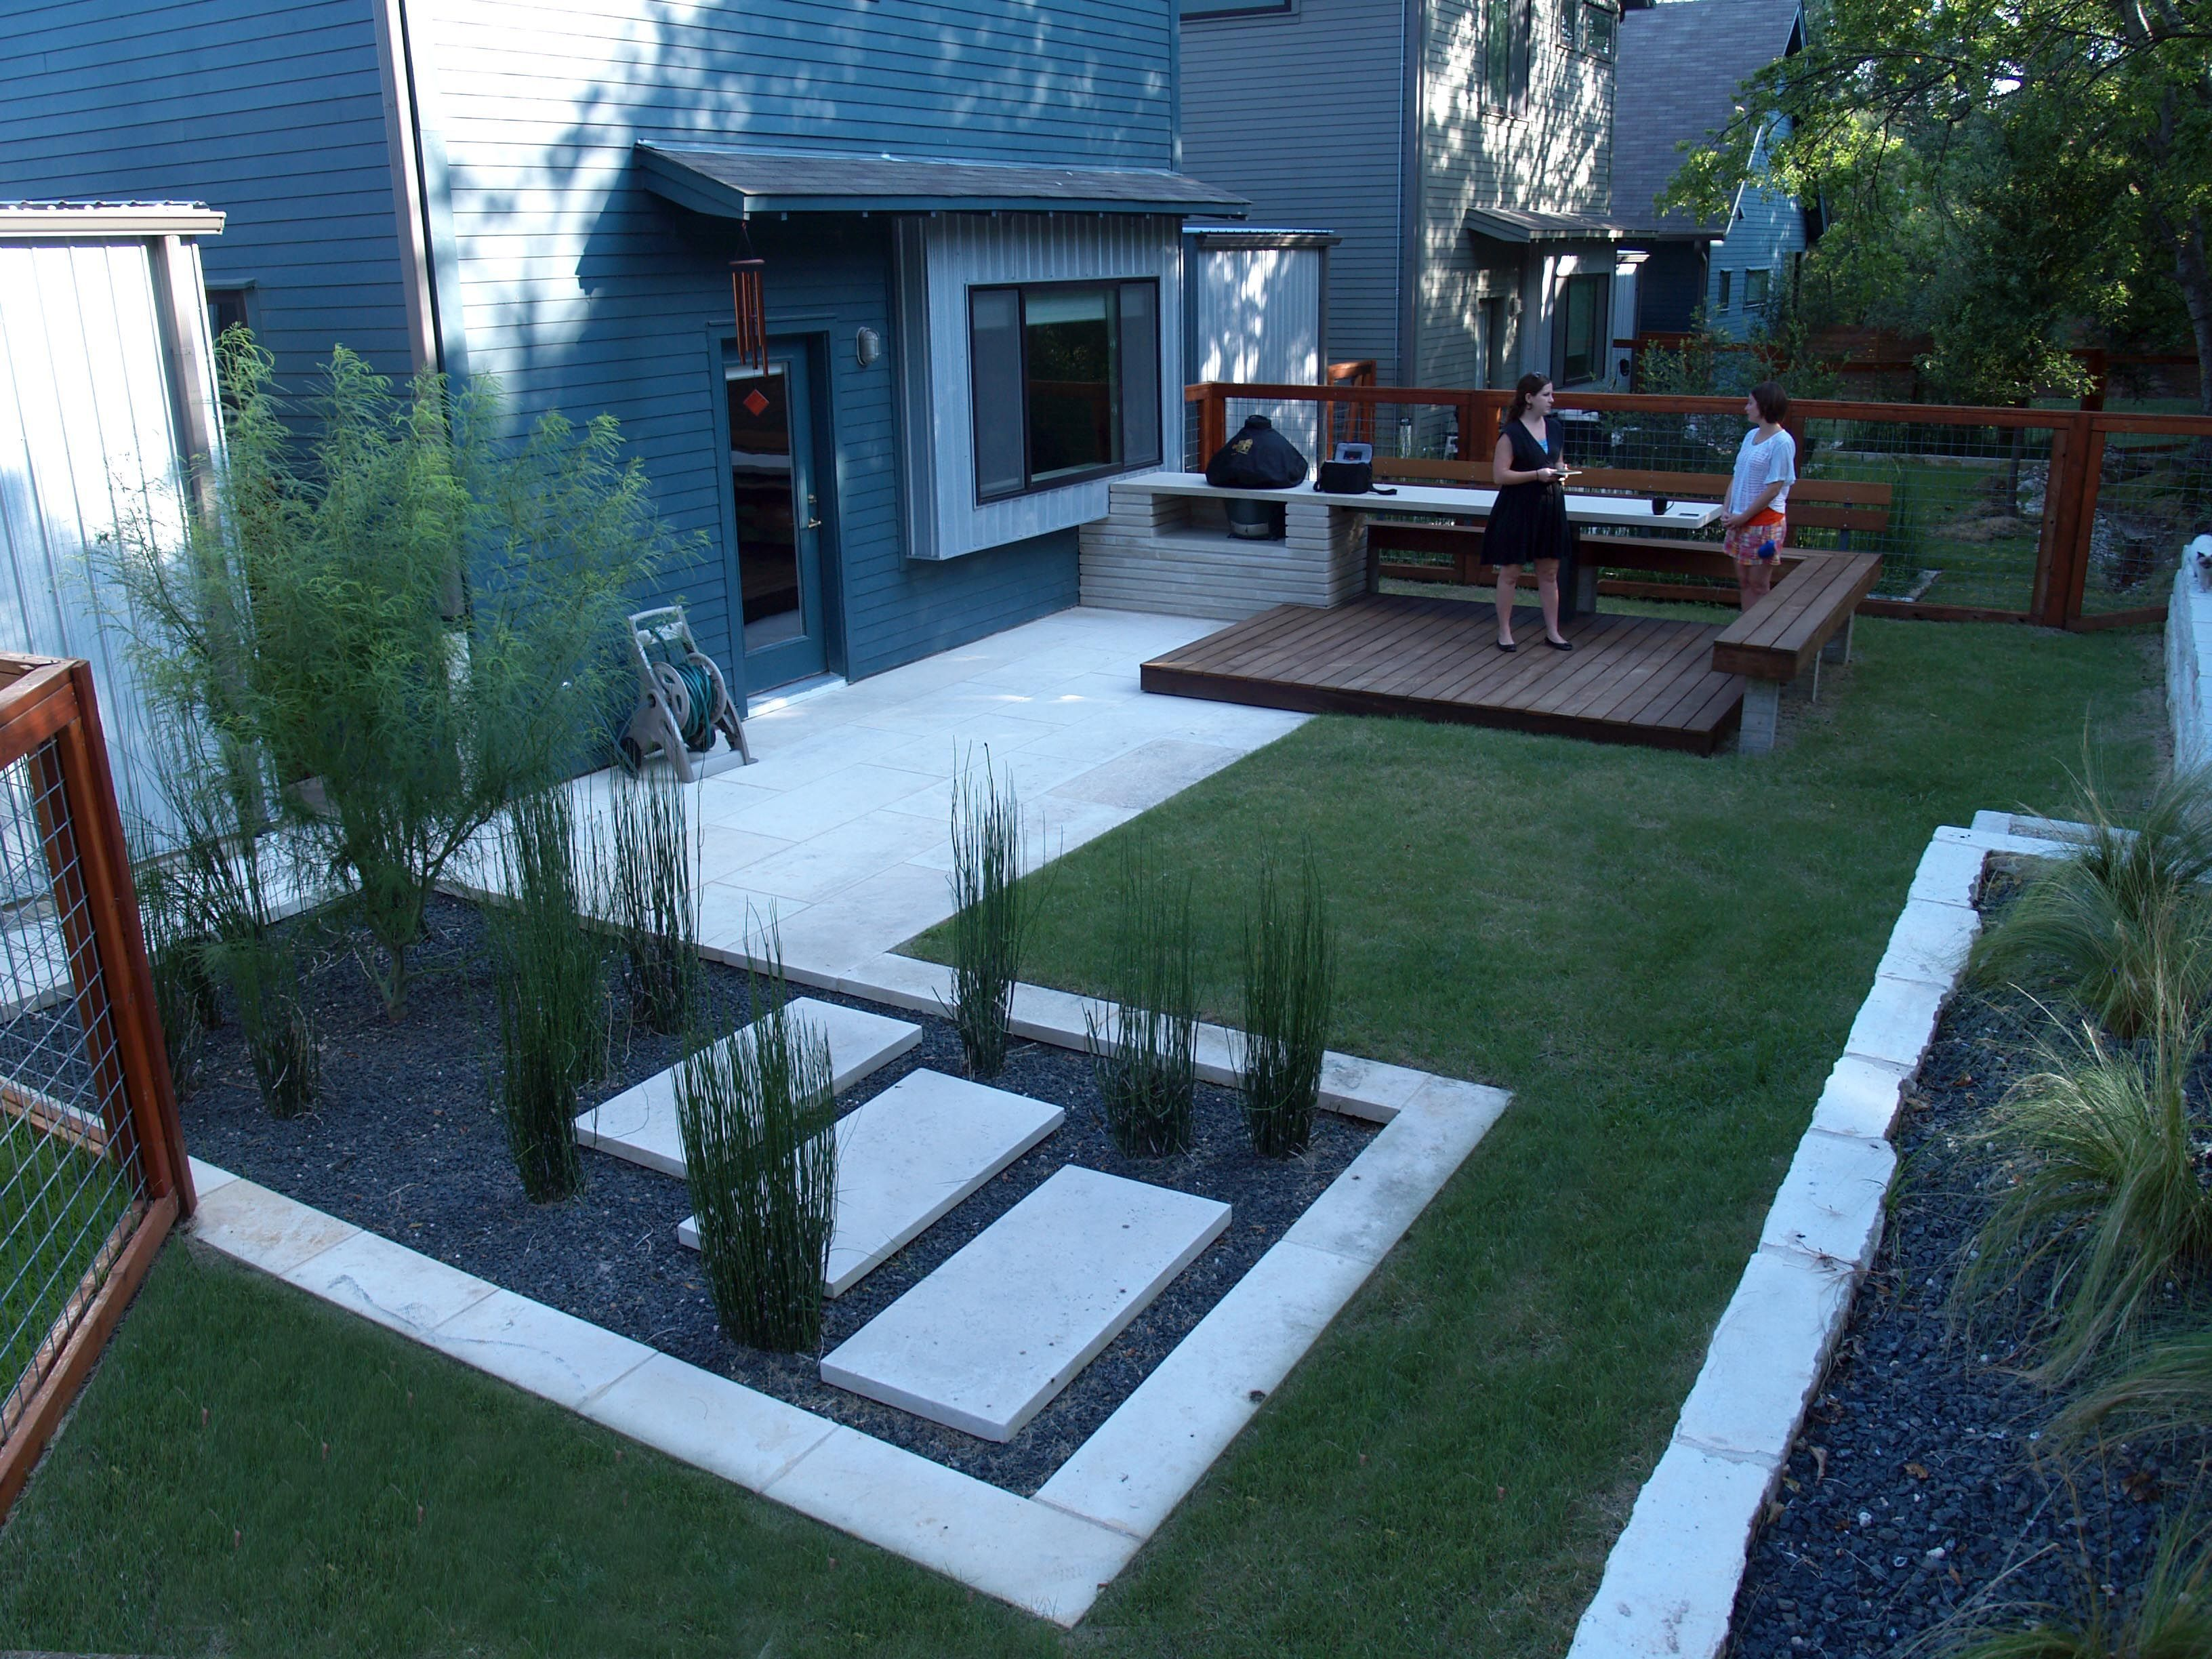 Mesmerizing Modern Landscaping Ideas For Small Backyards Pics